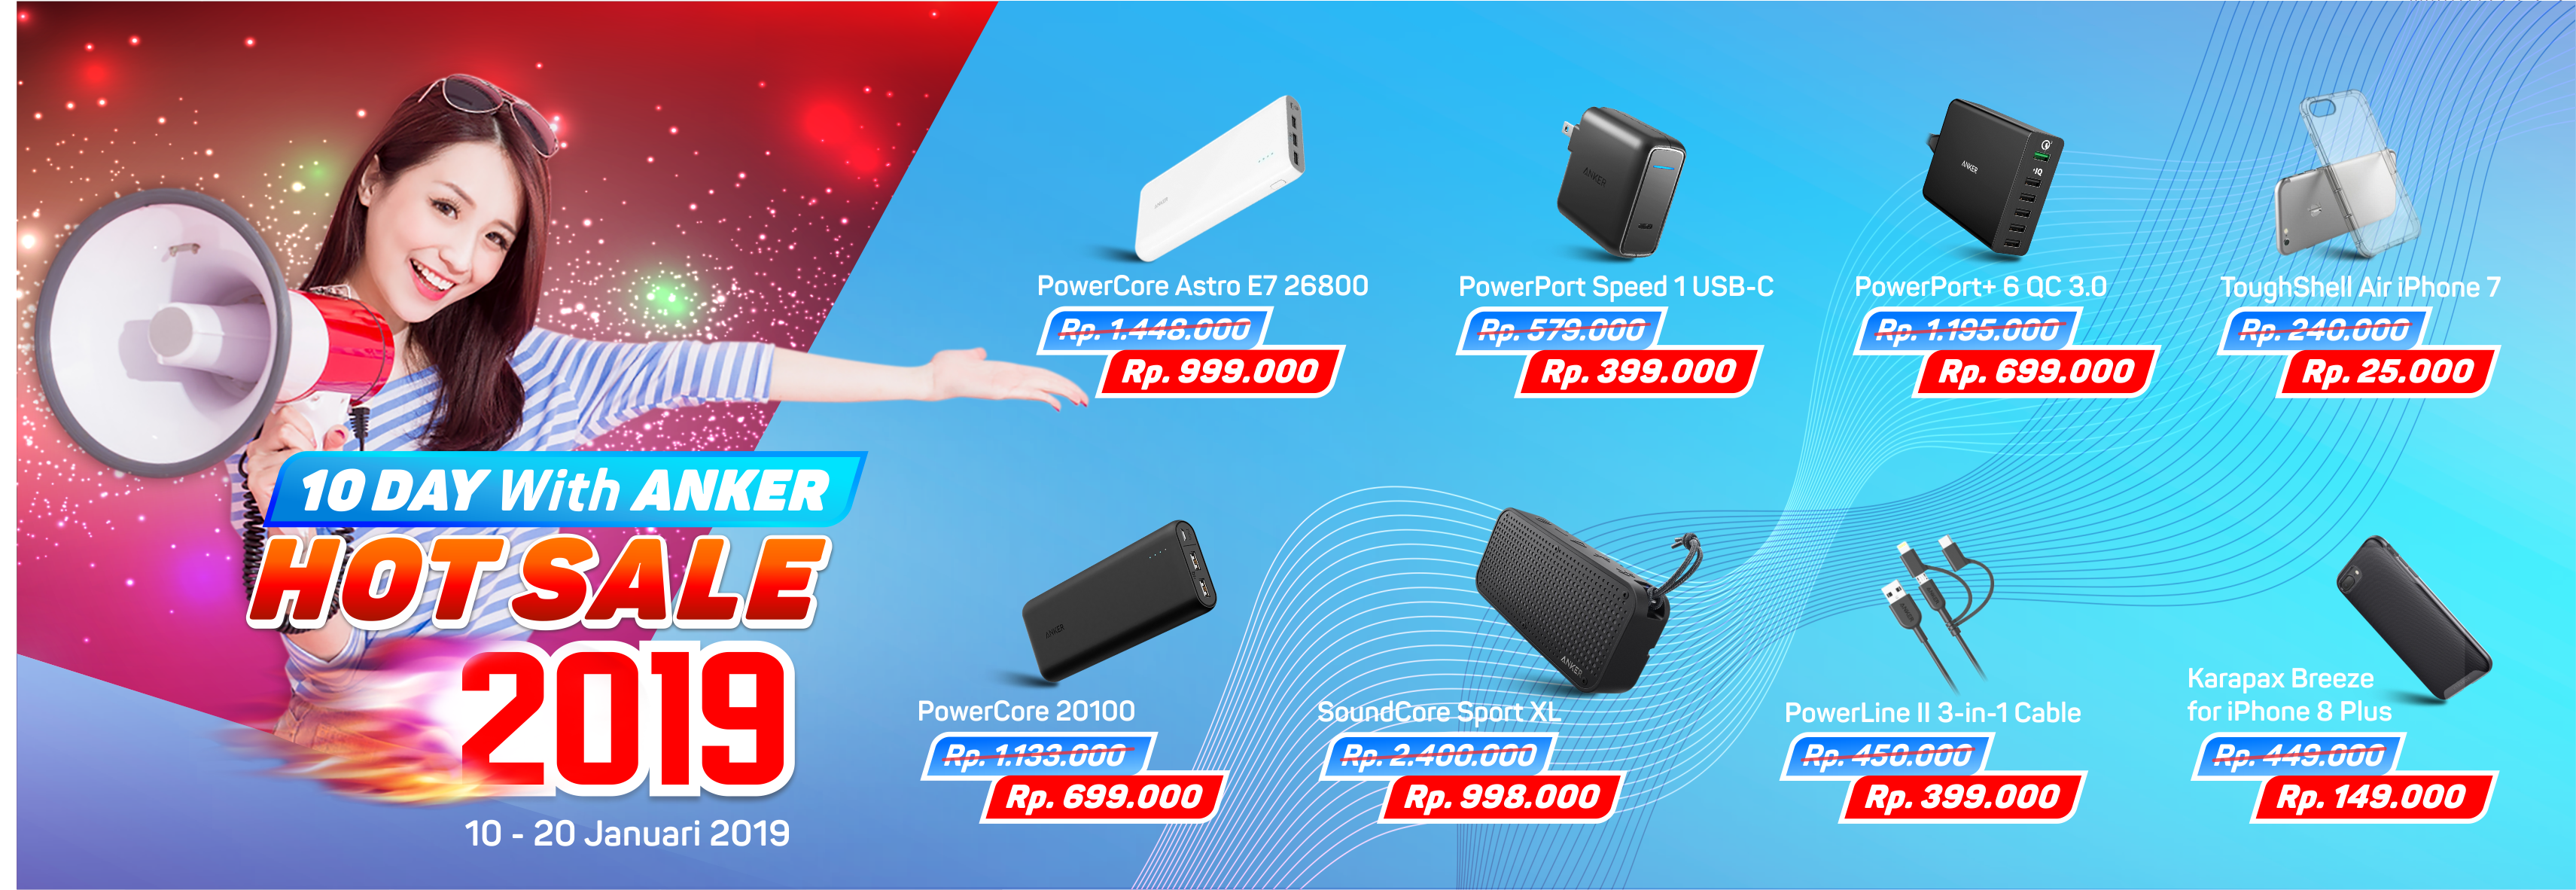 10 DAY WITH ANKER HOT SALE 2019